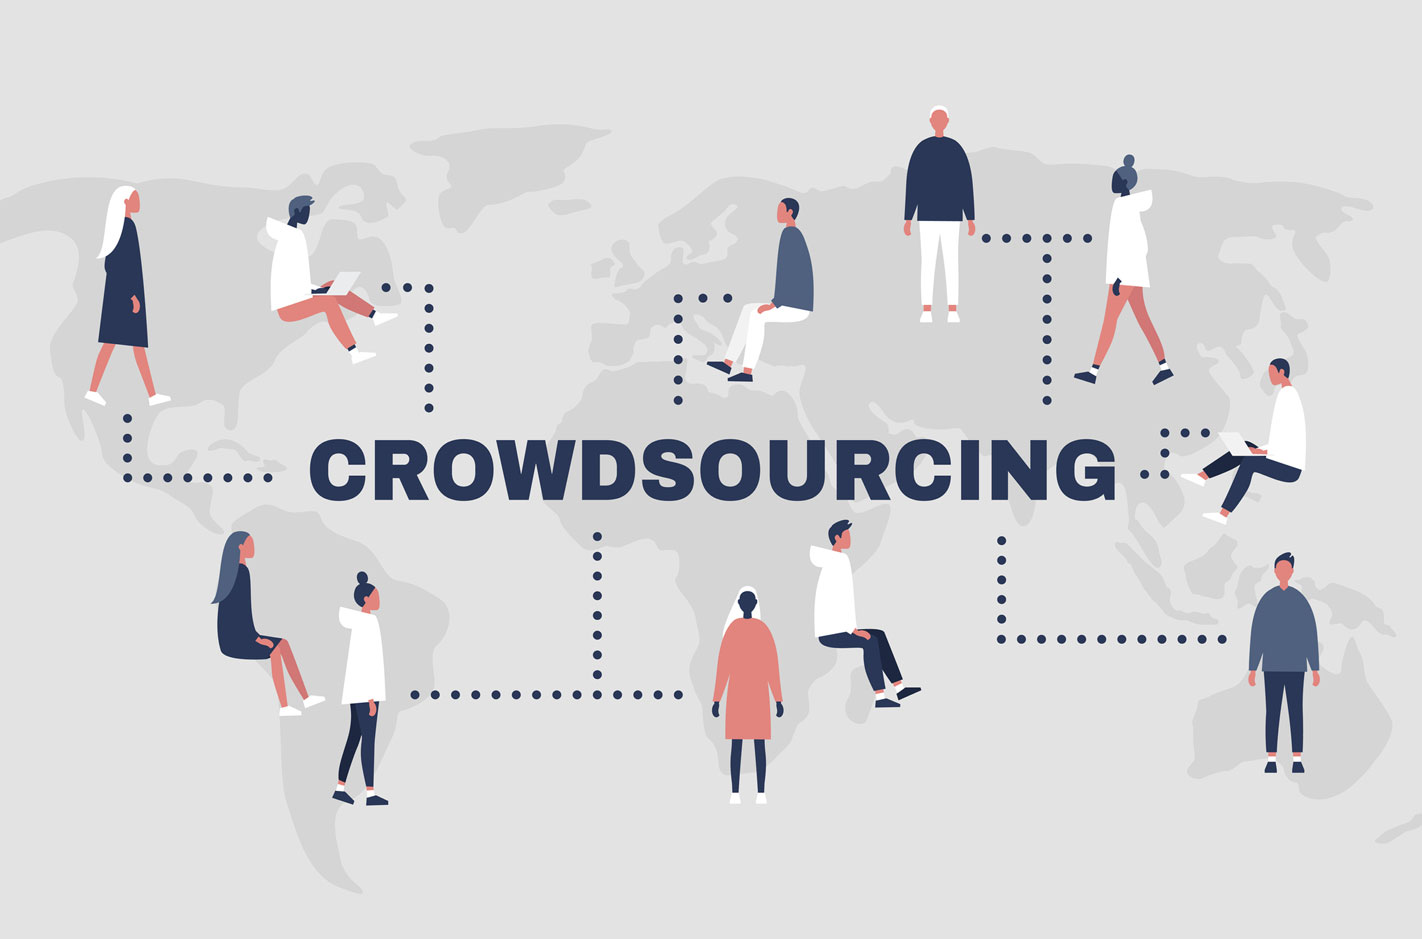 Intelligenz der Masse: So geht Crowdsourcing